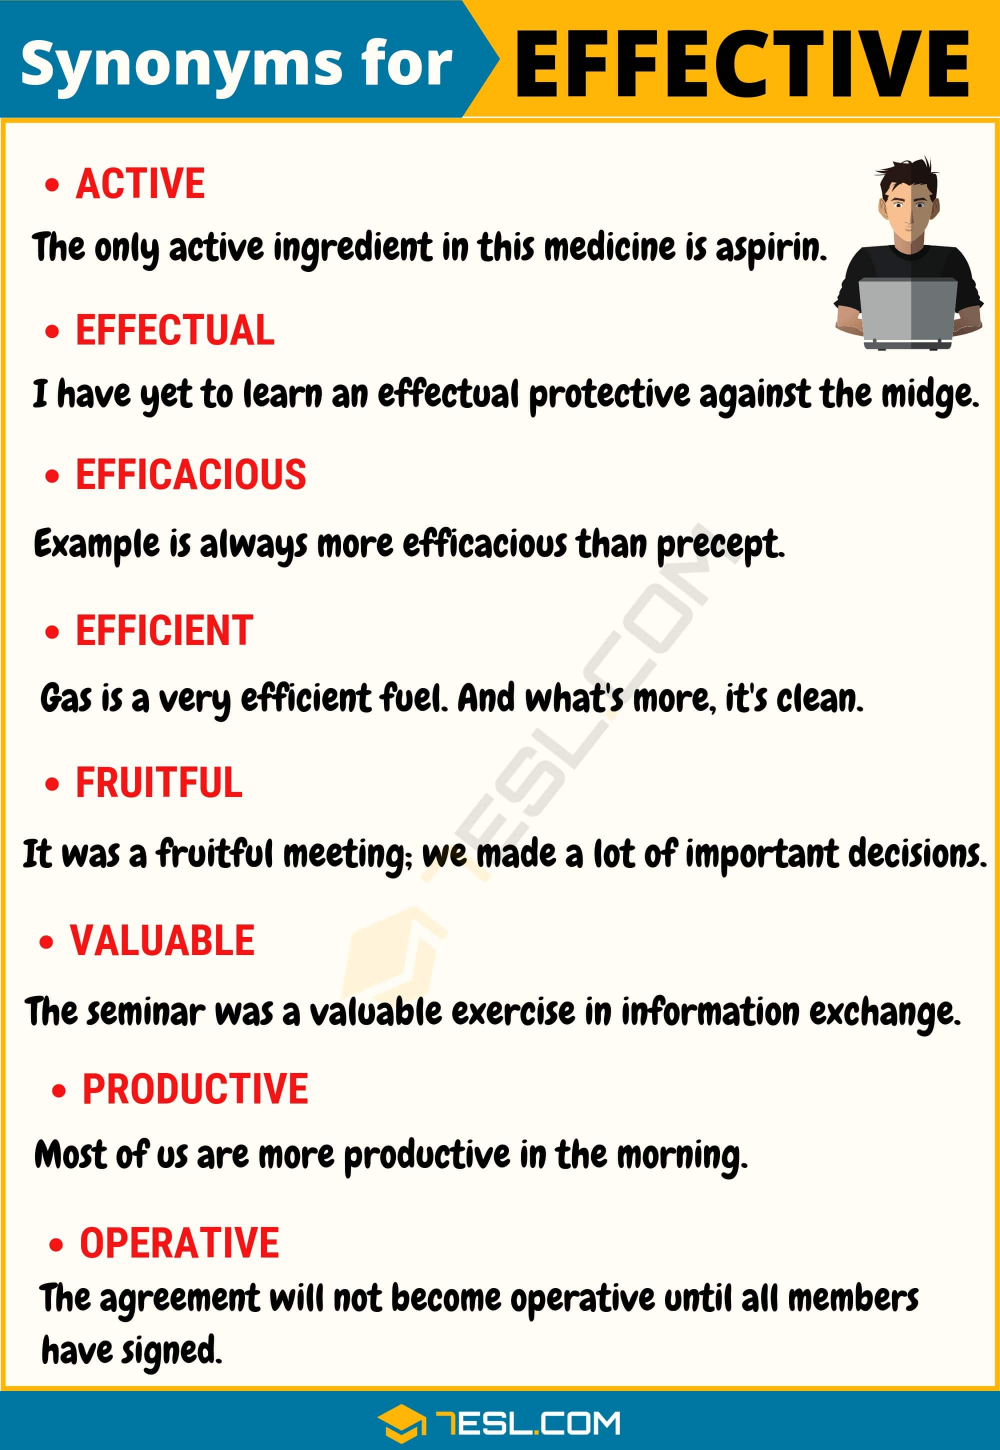 EFFECTIVE Synonym 20 Synonyms for Effective with Useful Examples ...